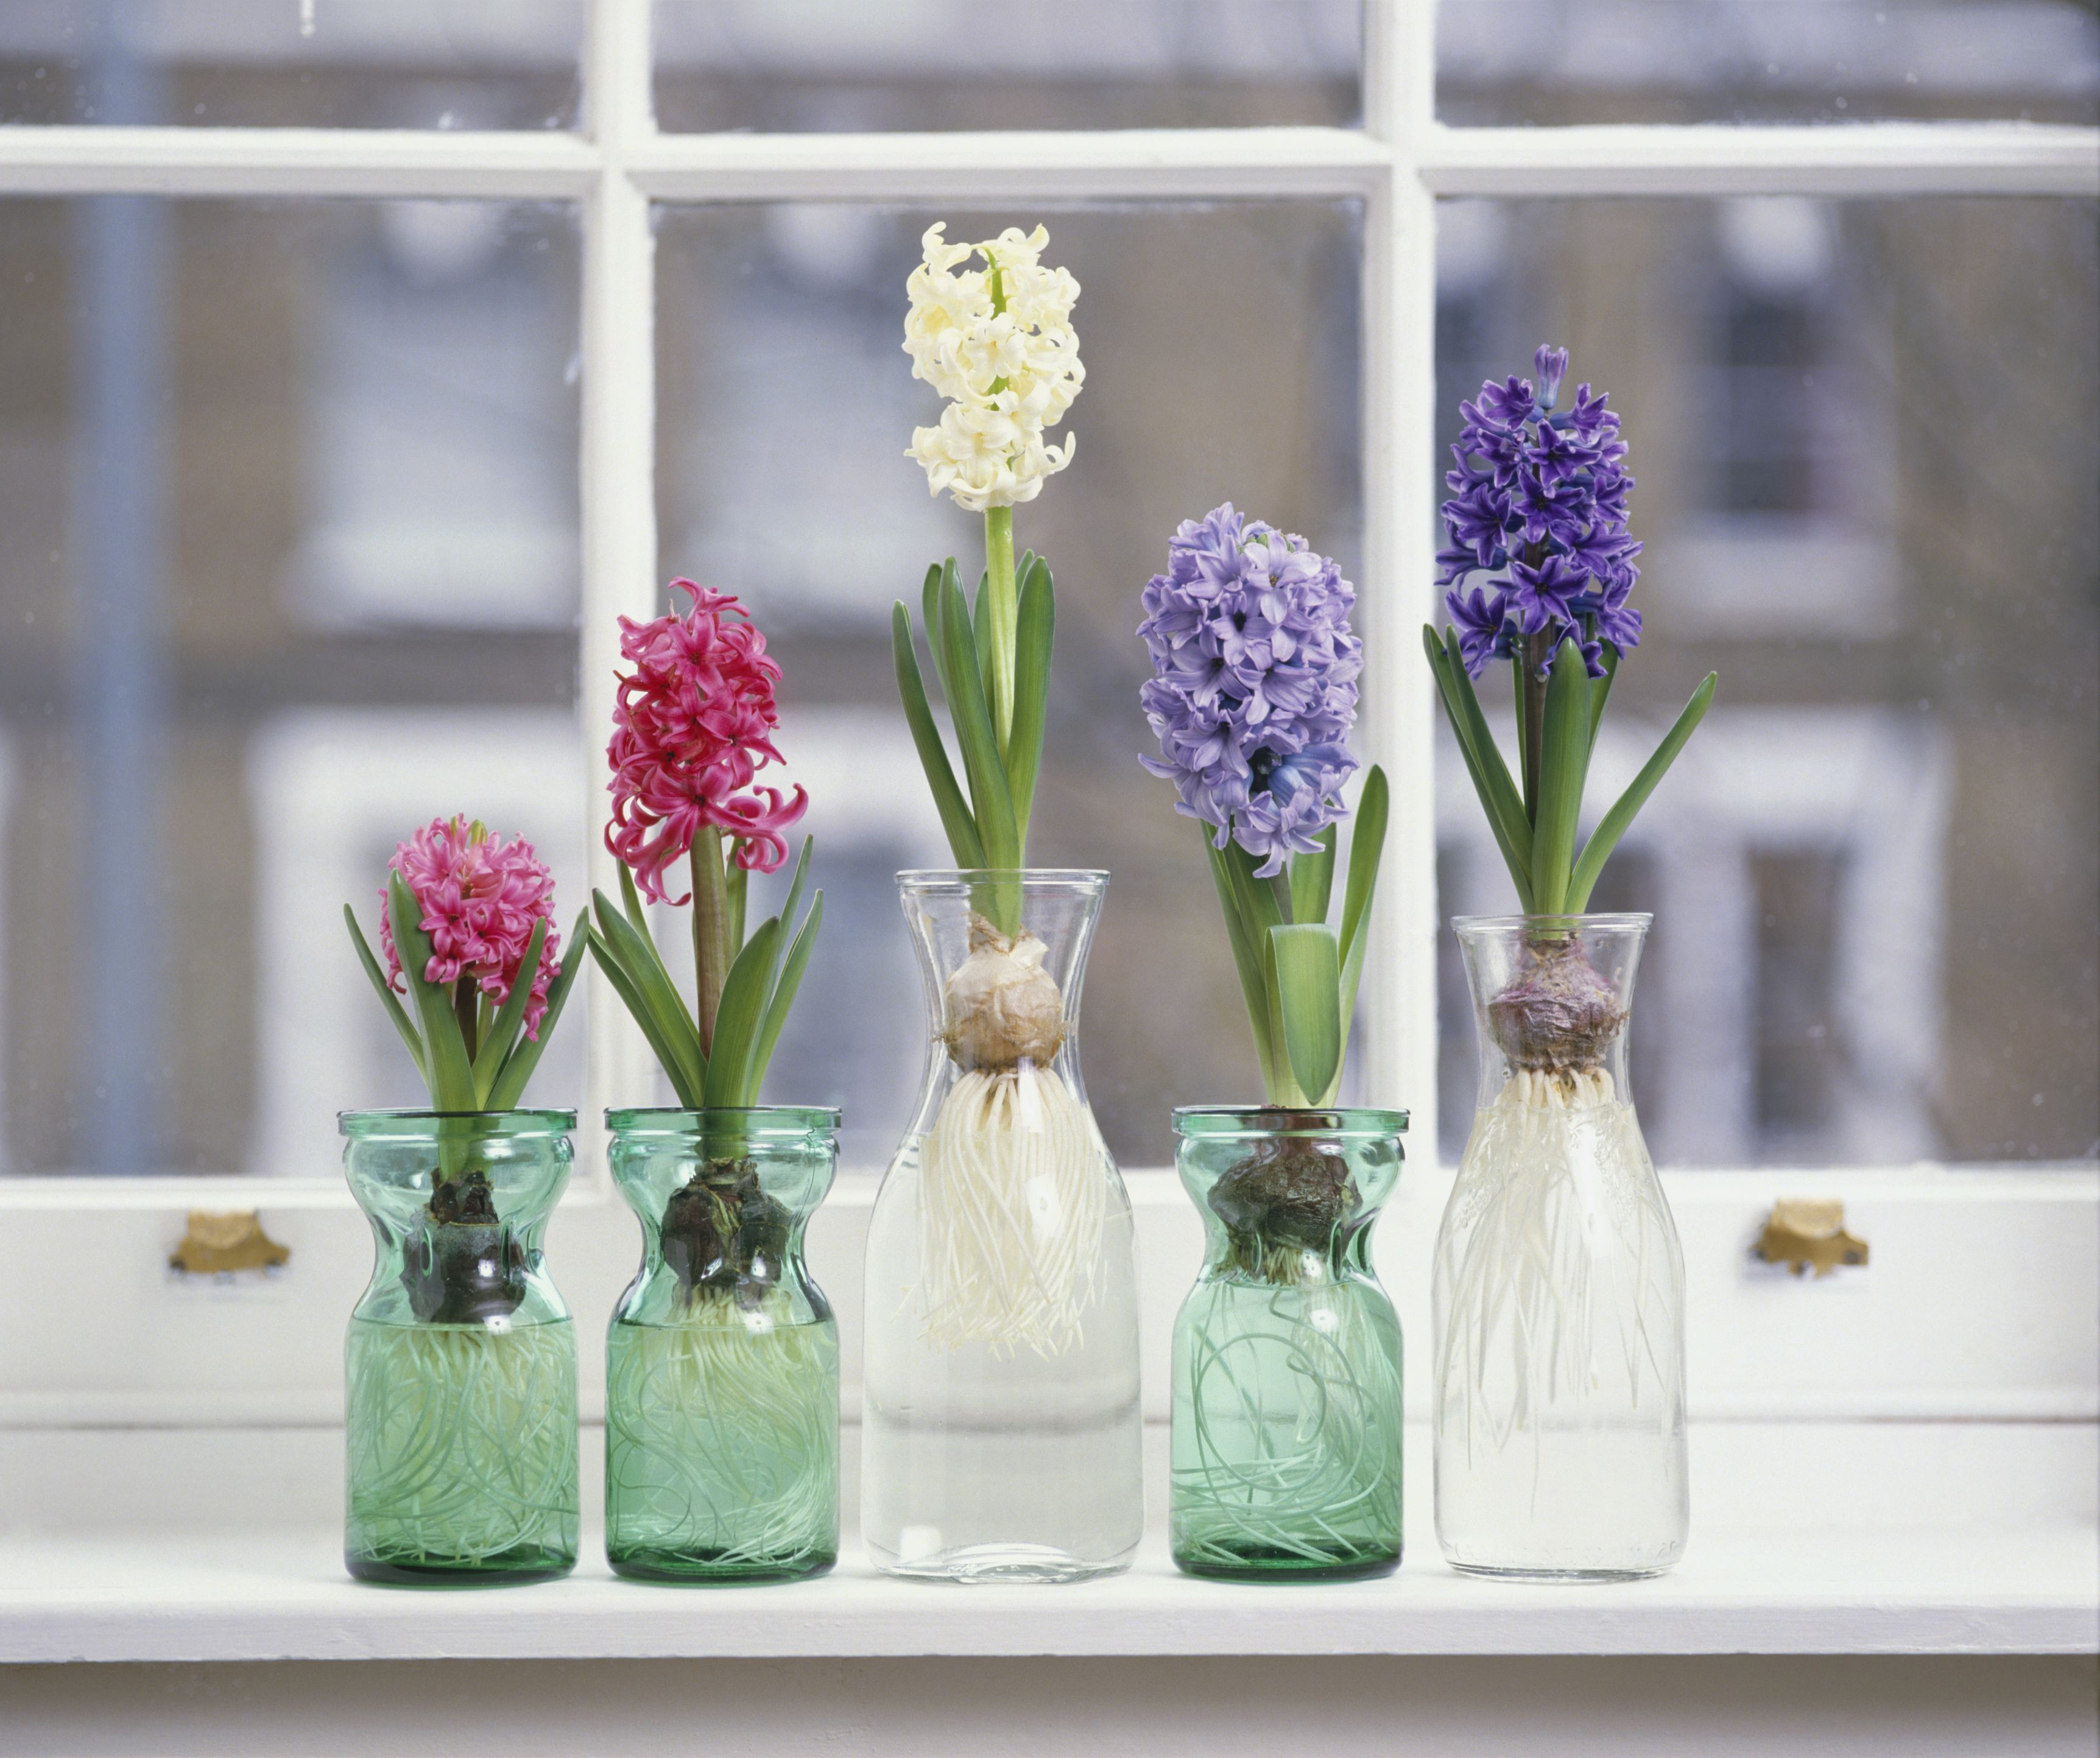 hyacinth forcing vase of how to grow hyacinth flowers indoors regarding pink white and purple hyacinthus plants with bulbs in glass jars on window sill 125157739 57c5b8f73df78cc16ead76eb